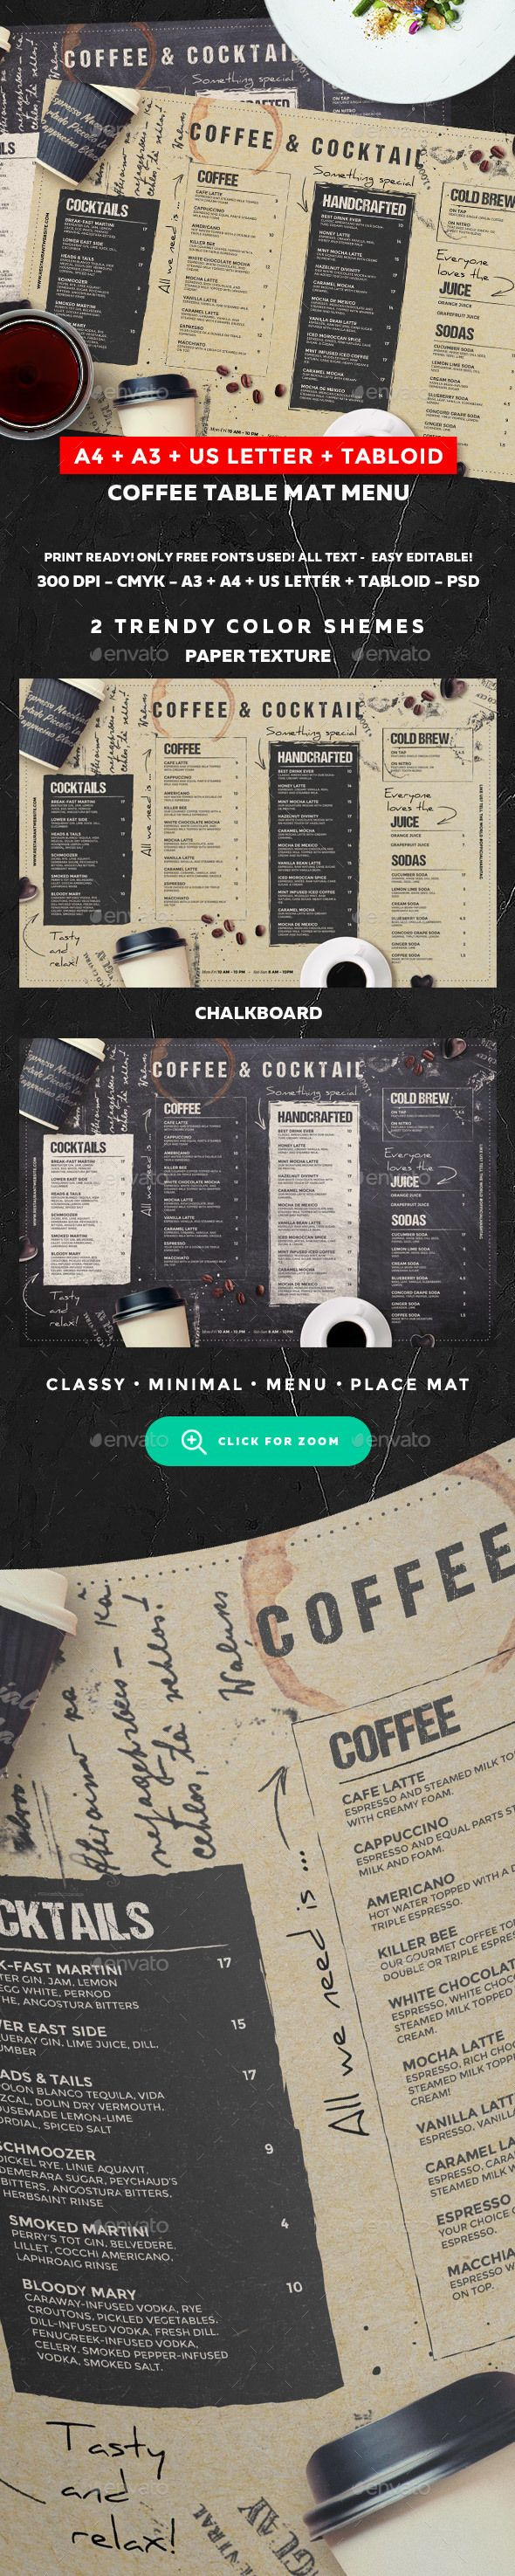 Coffee Menu #expresso #cake • Download ➝ https://graphicriver.net/item/coffee-menu/21301452?ref=pxcr